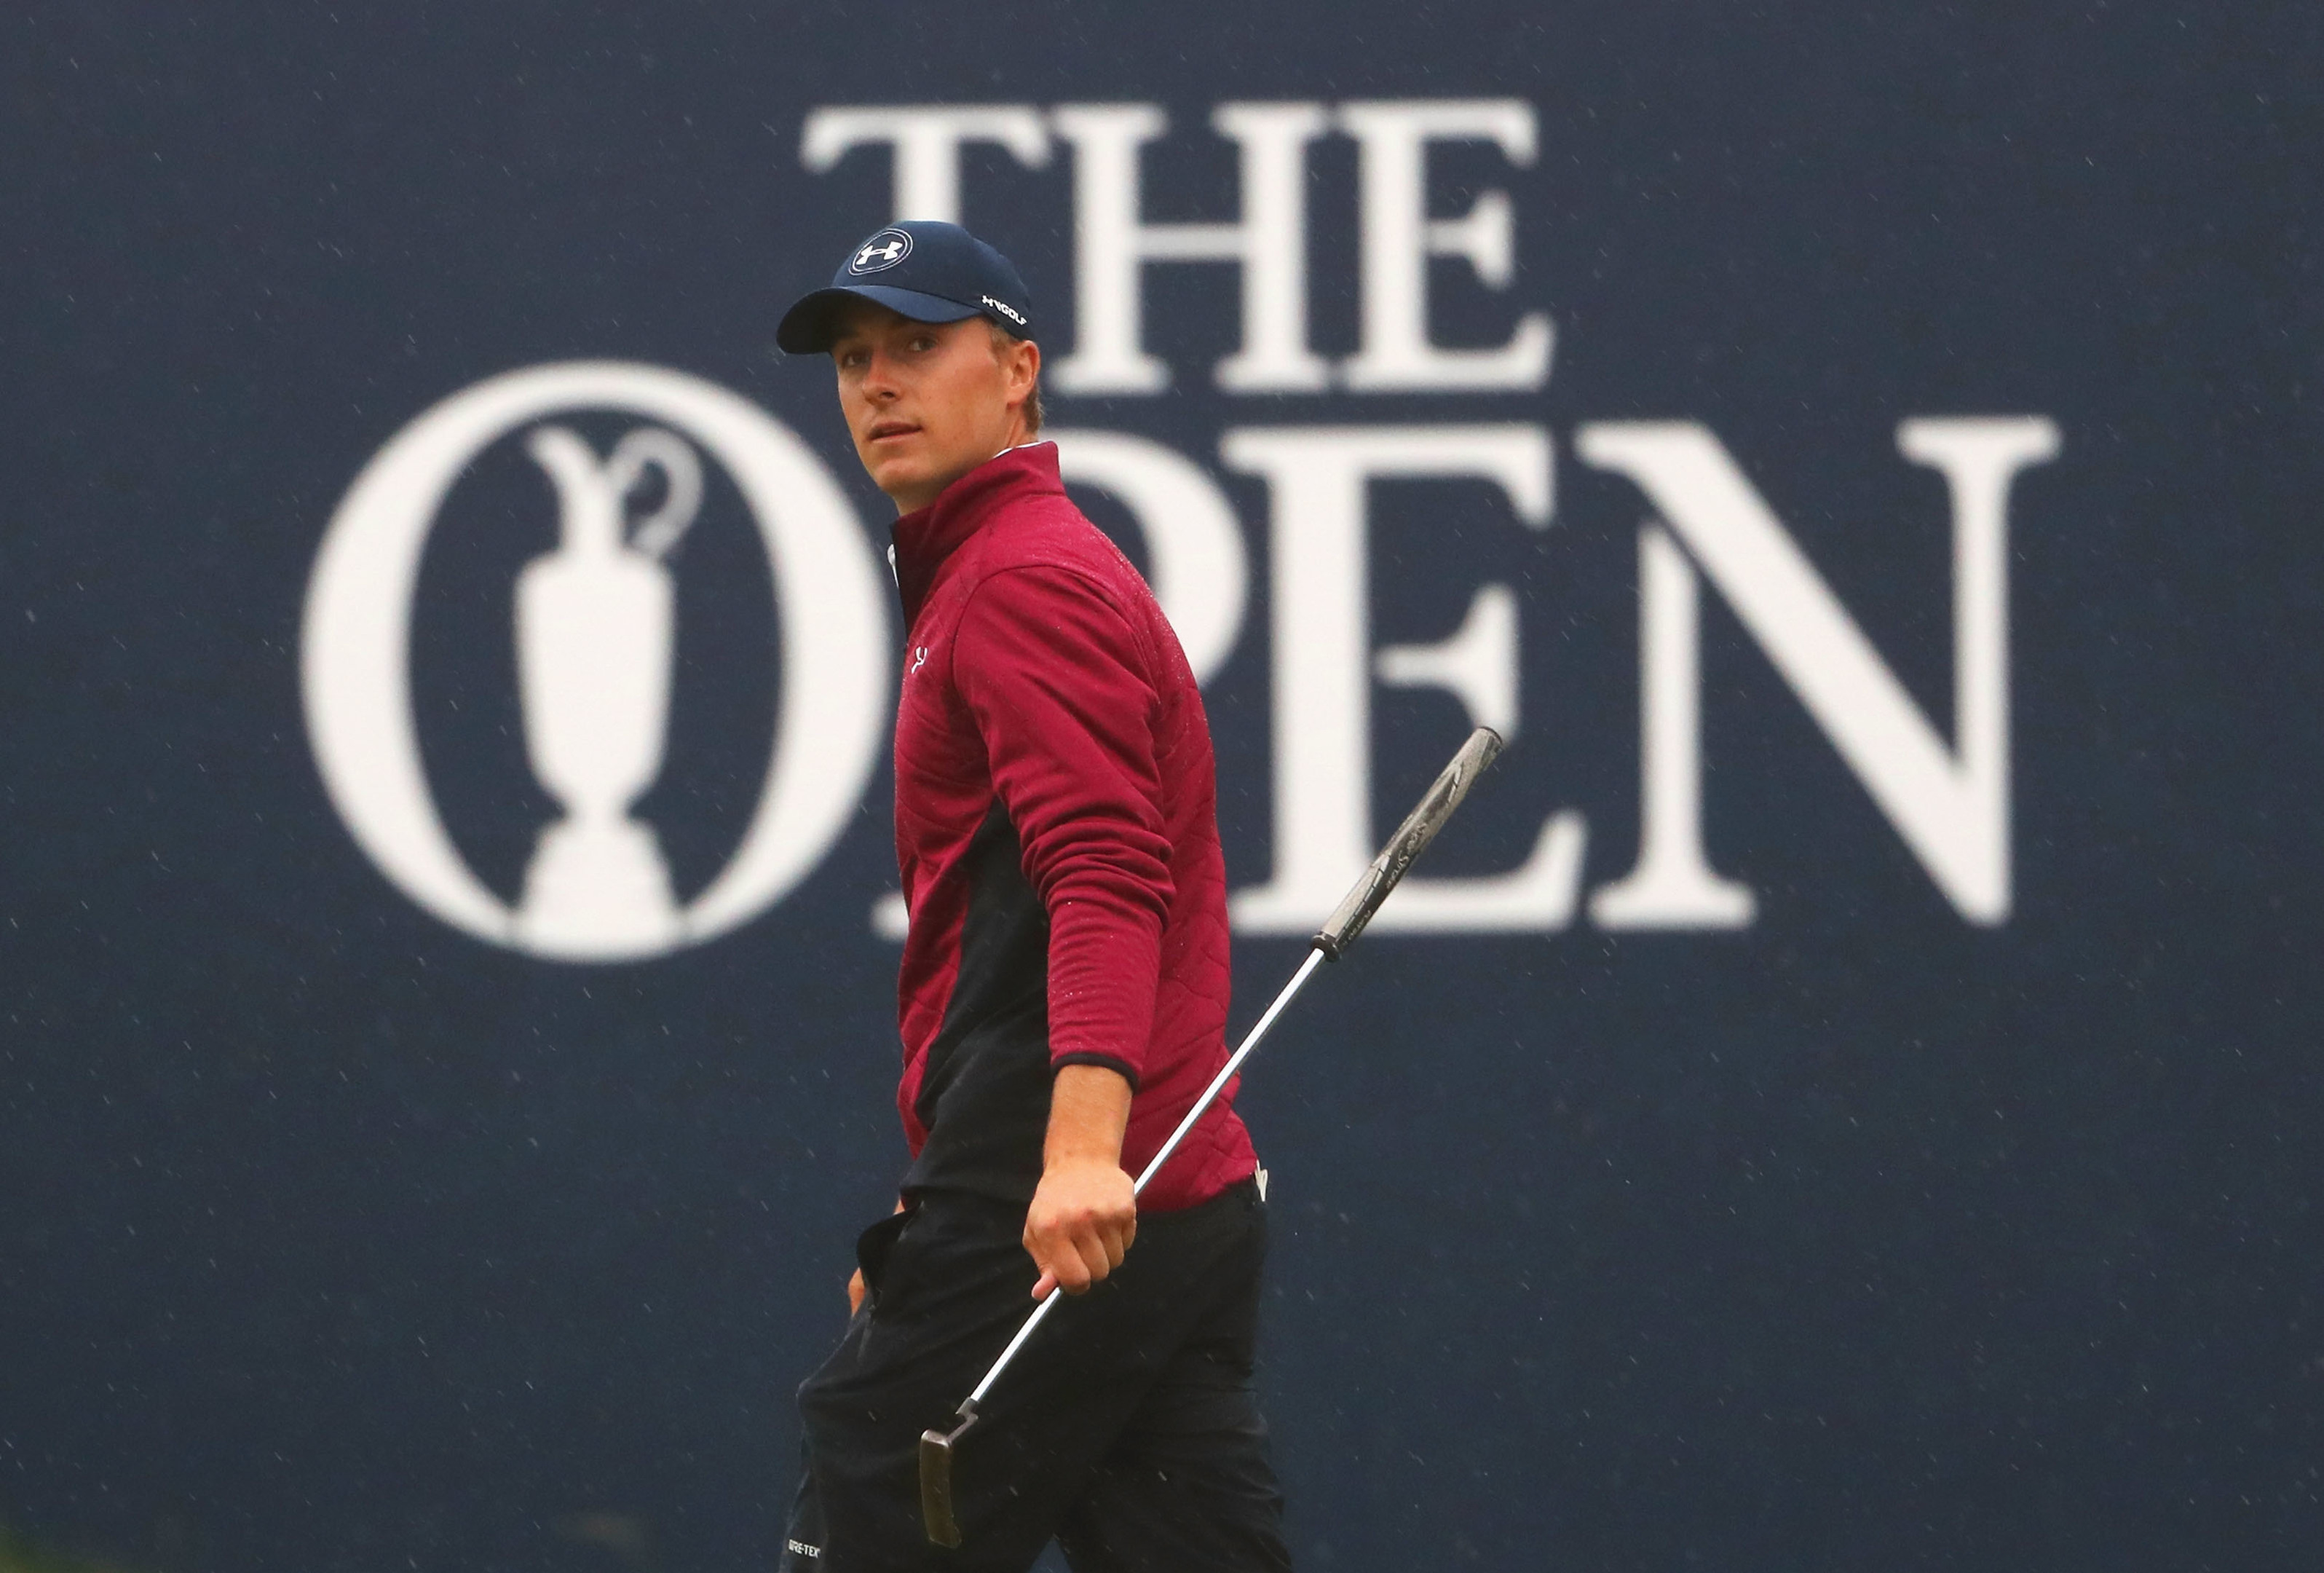 Jordan Spieth will defend his Open title at Carnoustie in July.